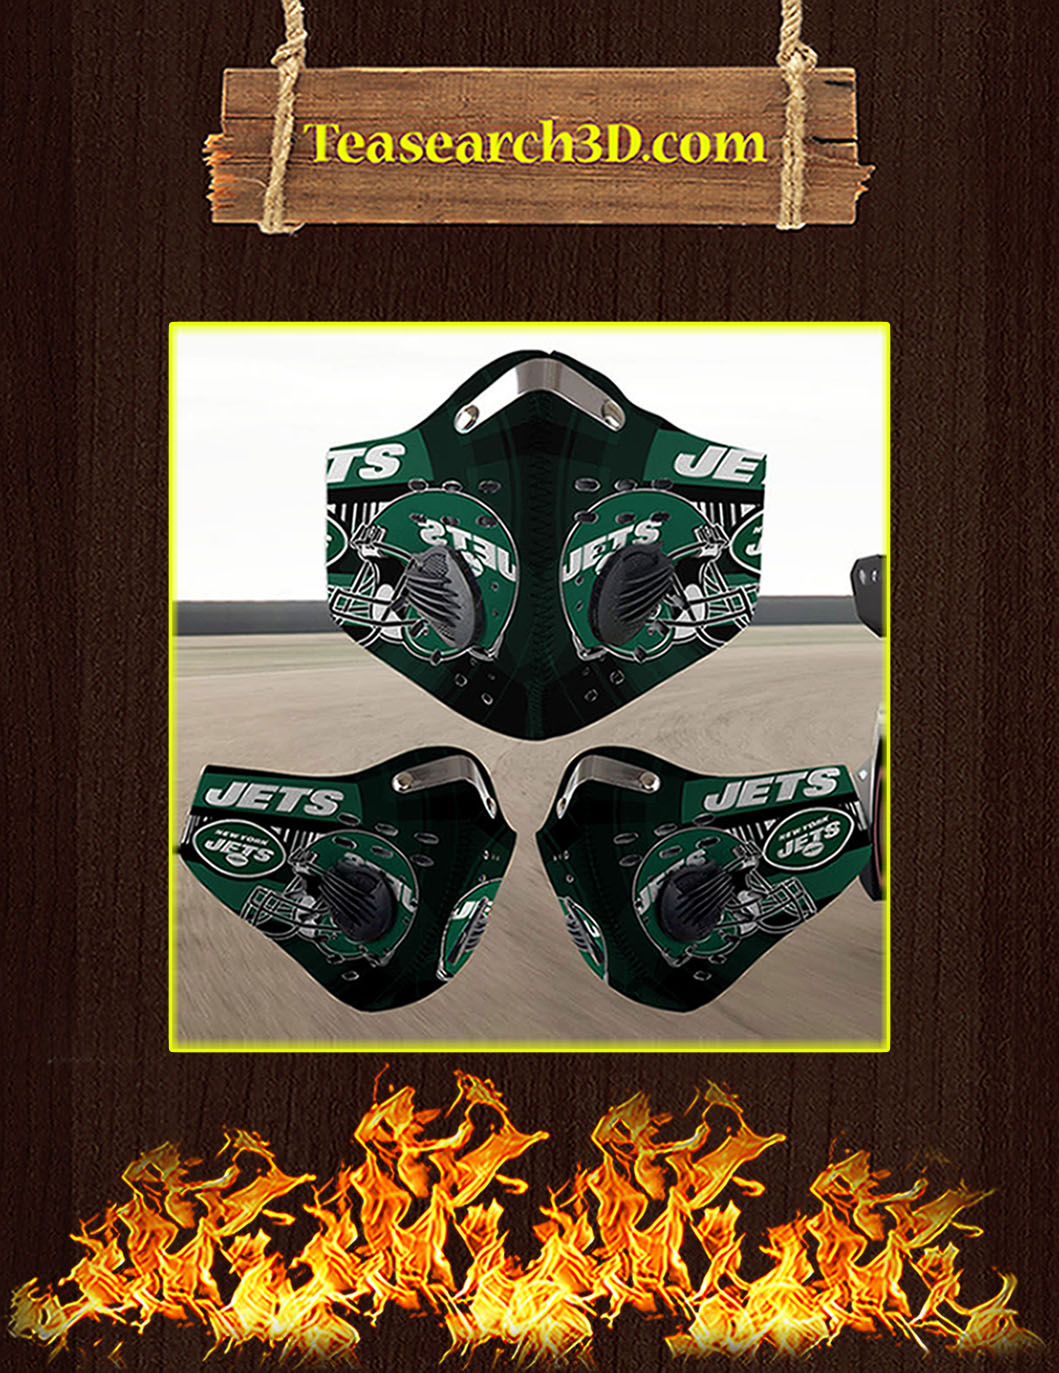 New York Jets filter face mask pack 5